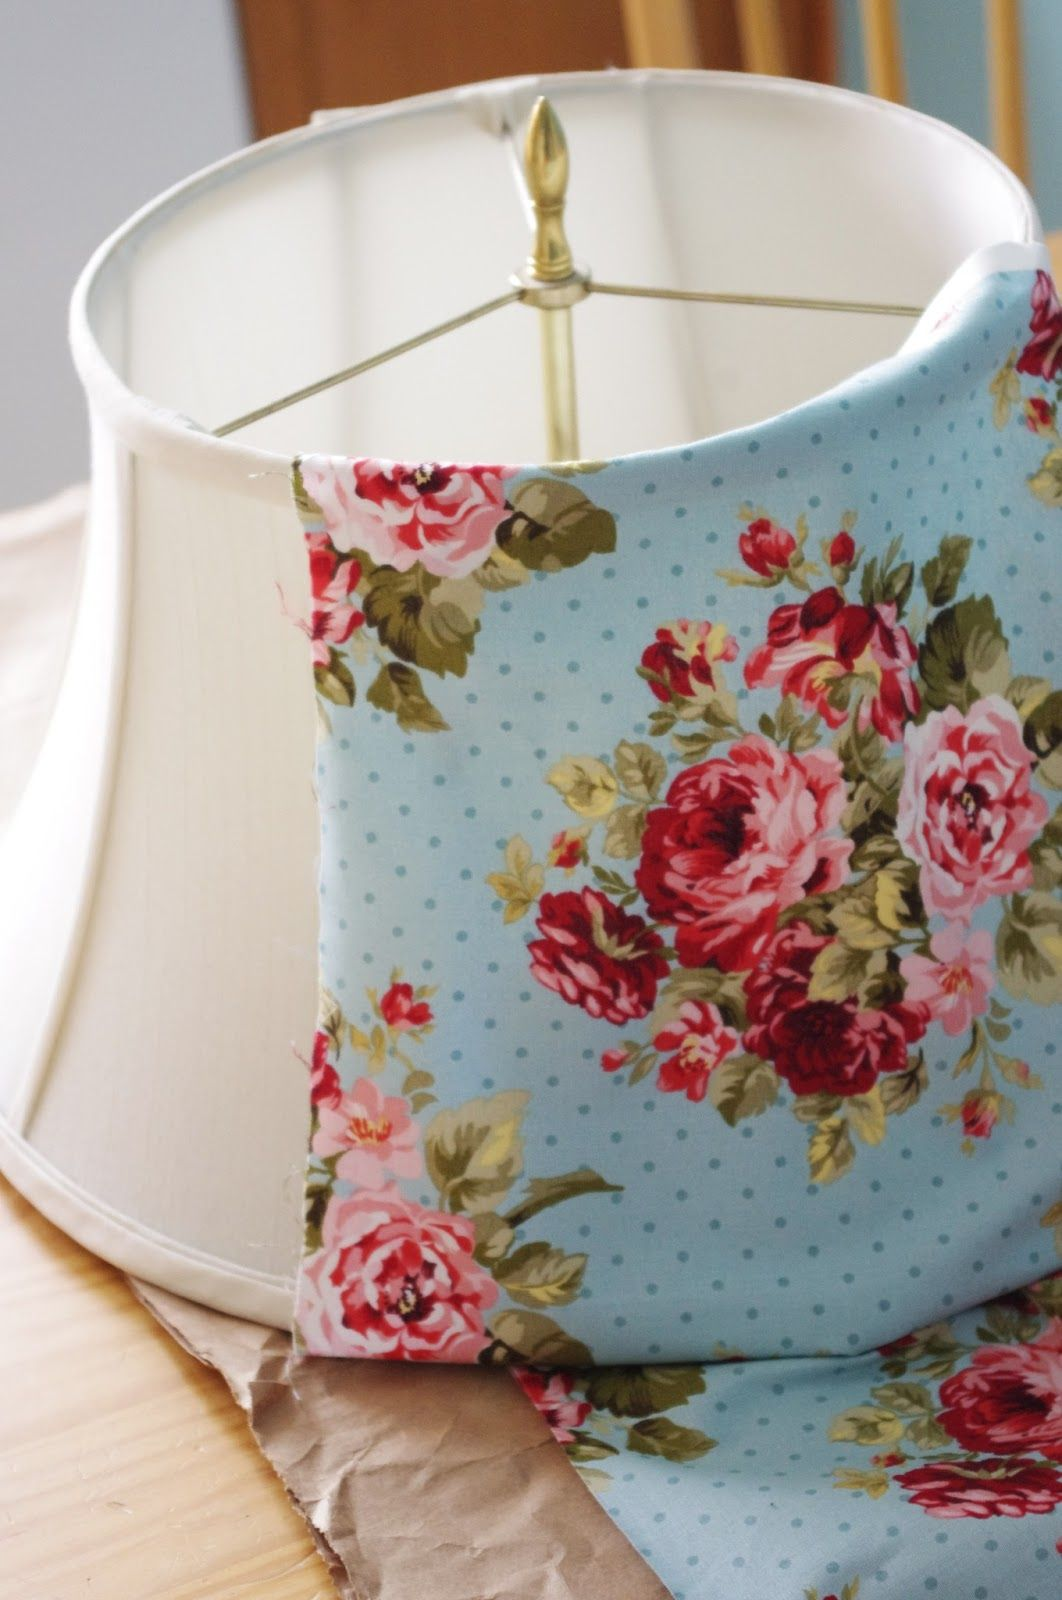 Clever crafty creative lampshade makeover tutorial